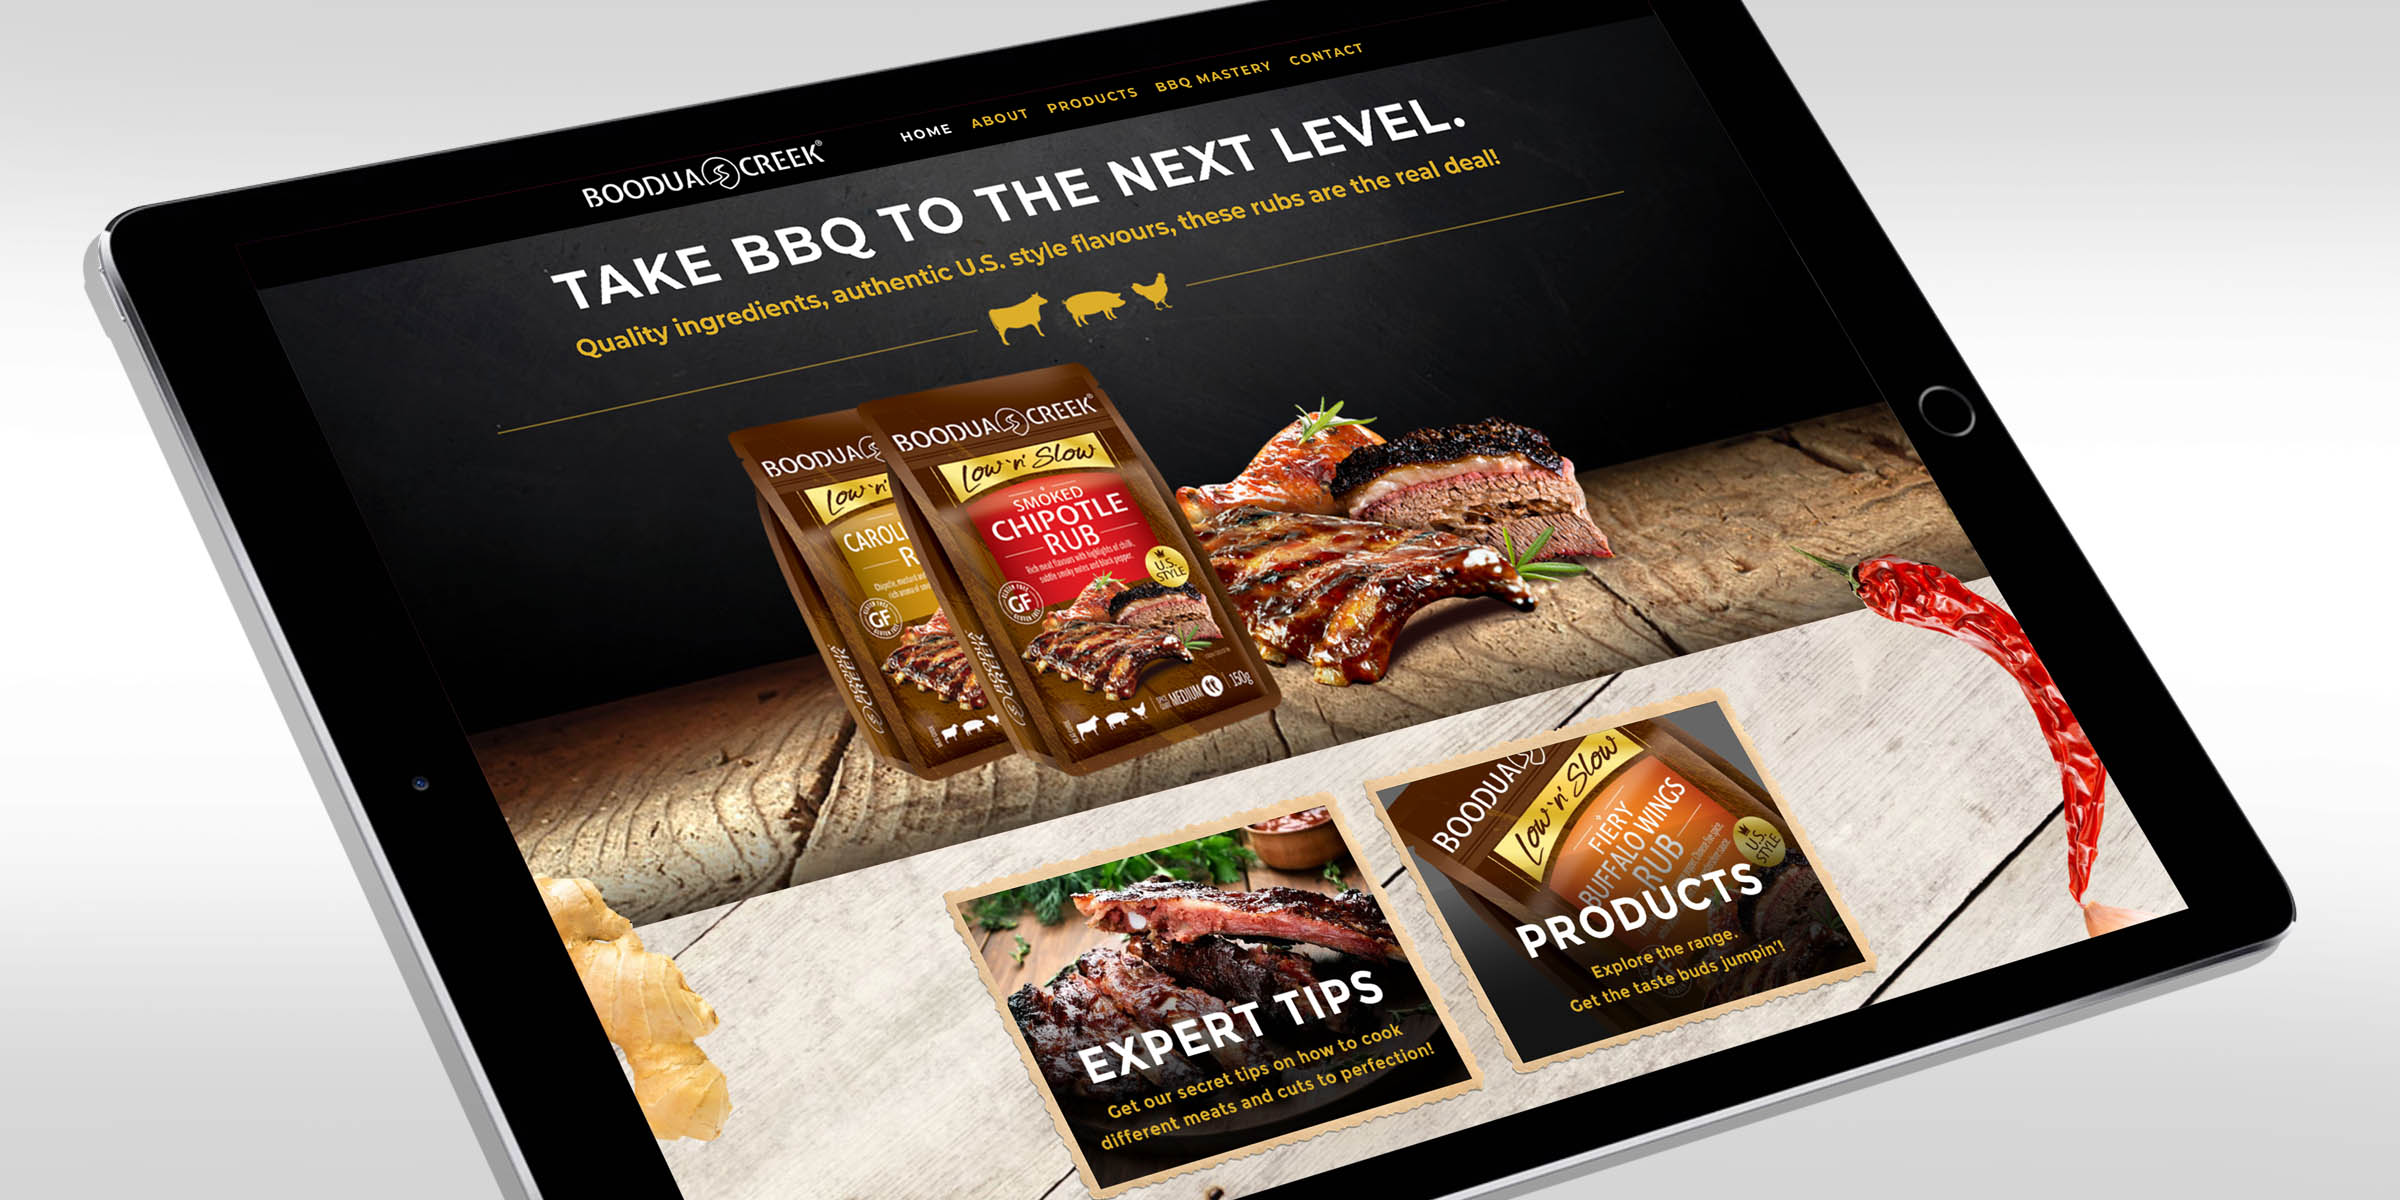 On this project. we created a fully responsive website to promote the new range of products and build a following.